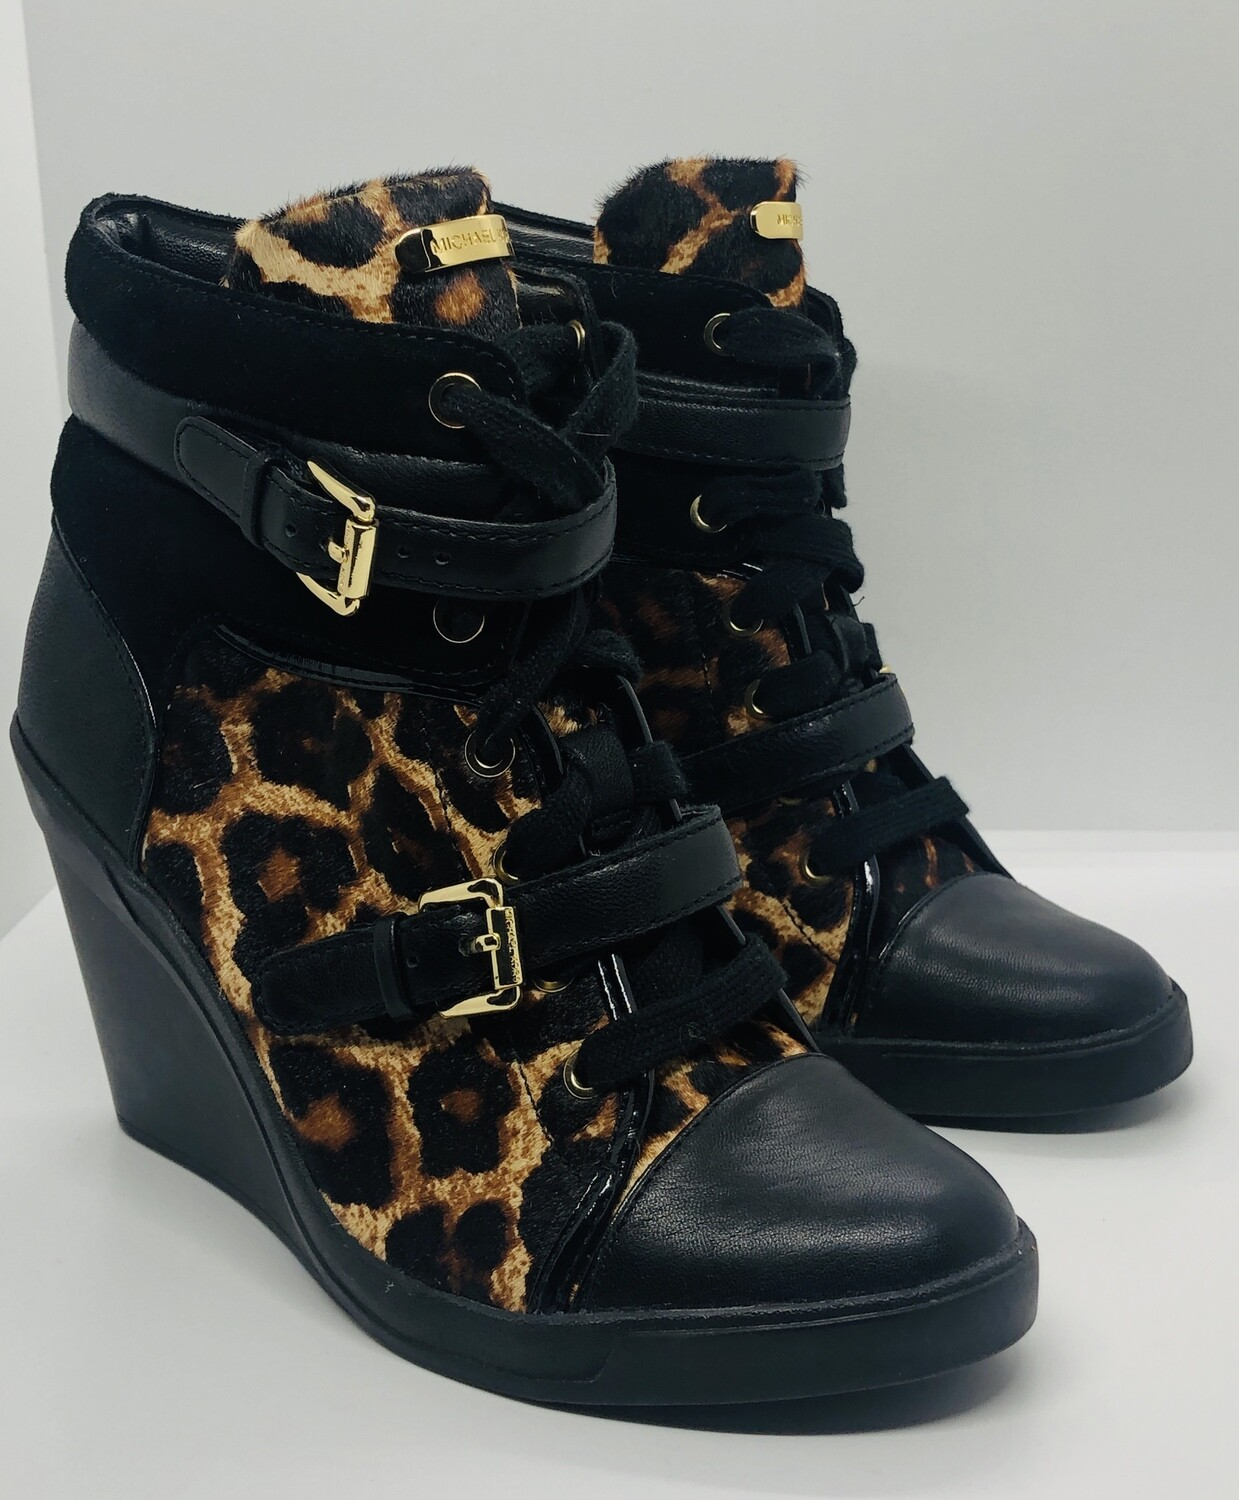 MICHAEL KORS Animal Print Fur & Leather Wedge Ankle Boots size 7 1/2